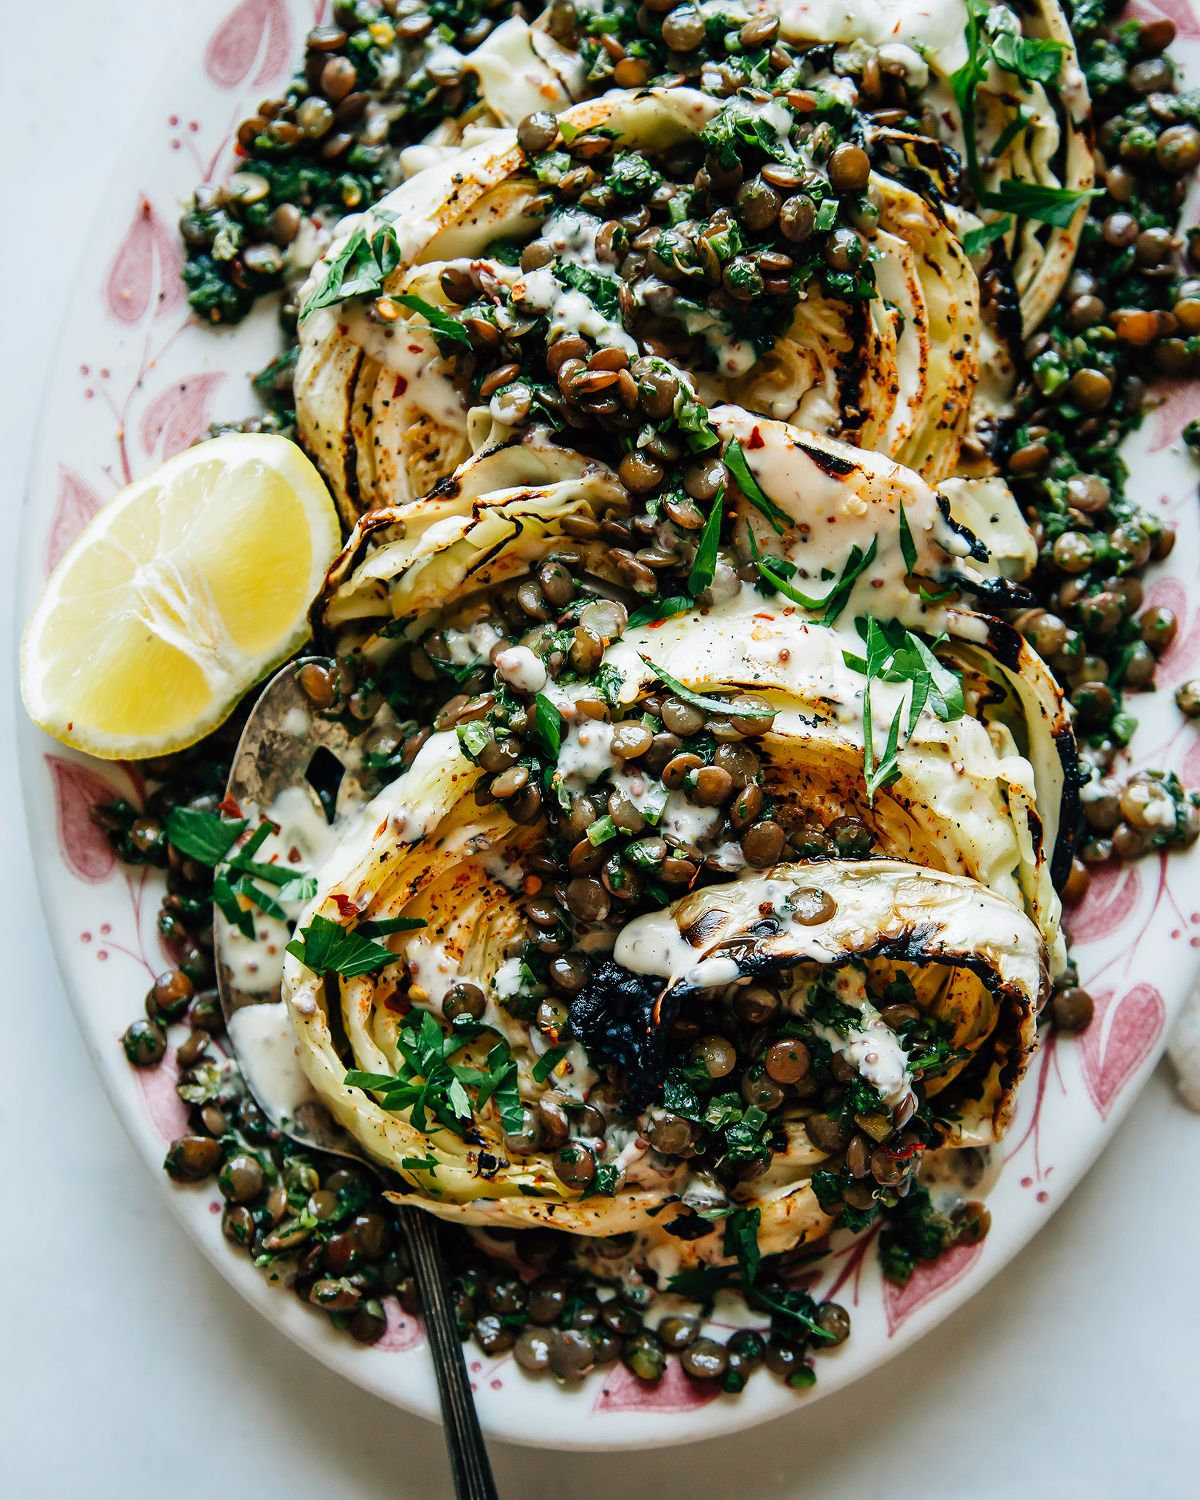 Grilled Cabbage Steaks with Jalapeño Chimichurri